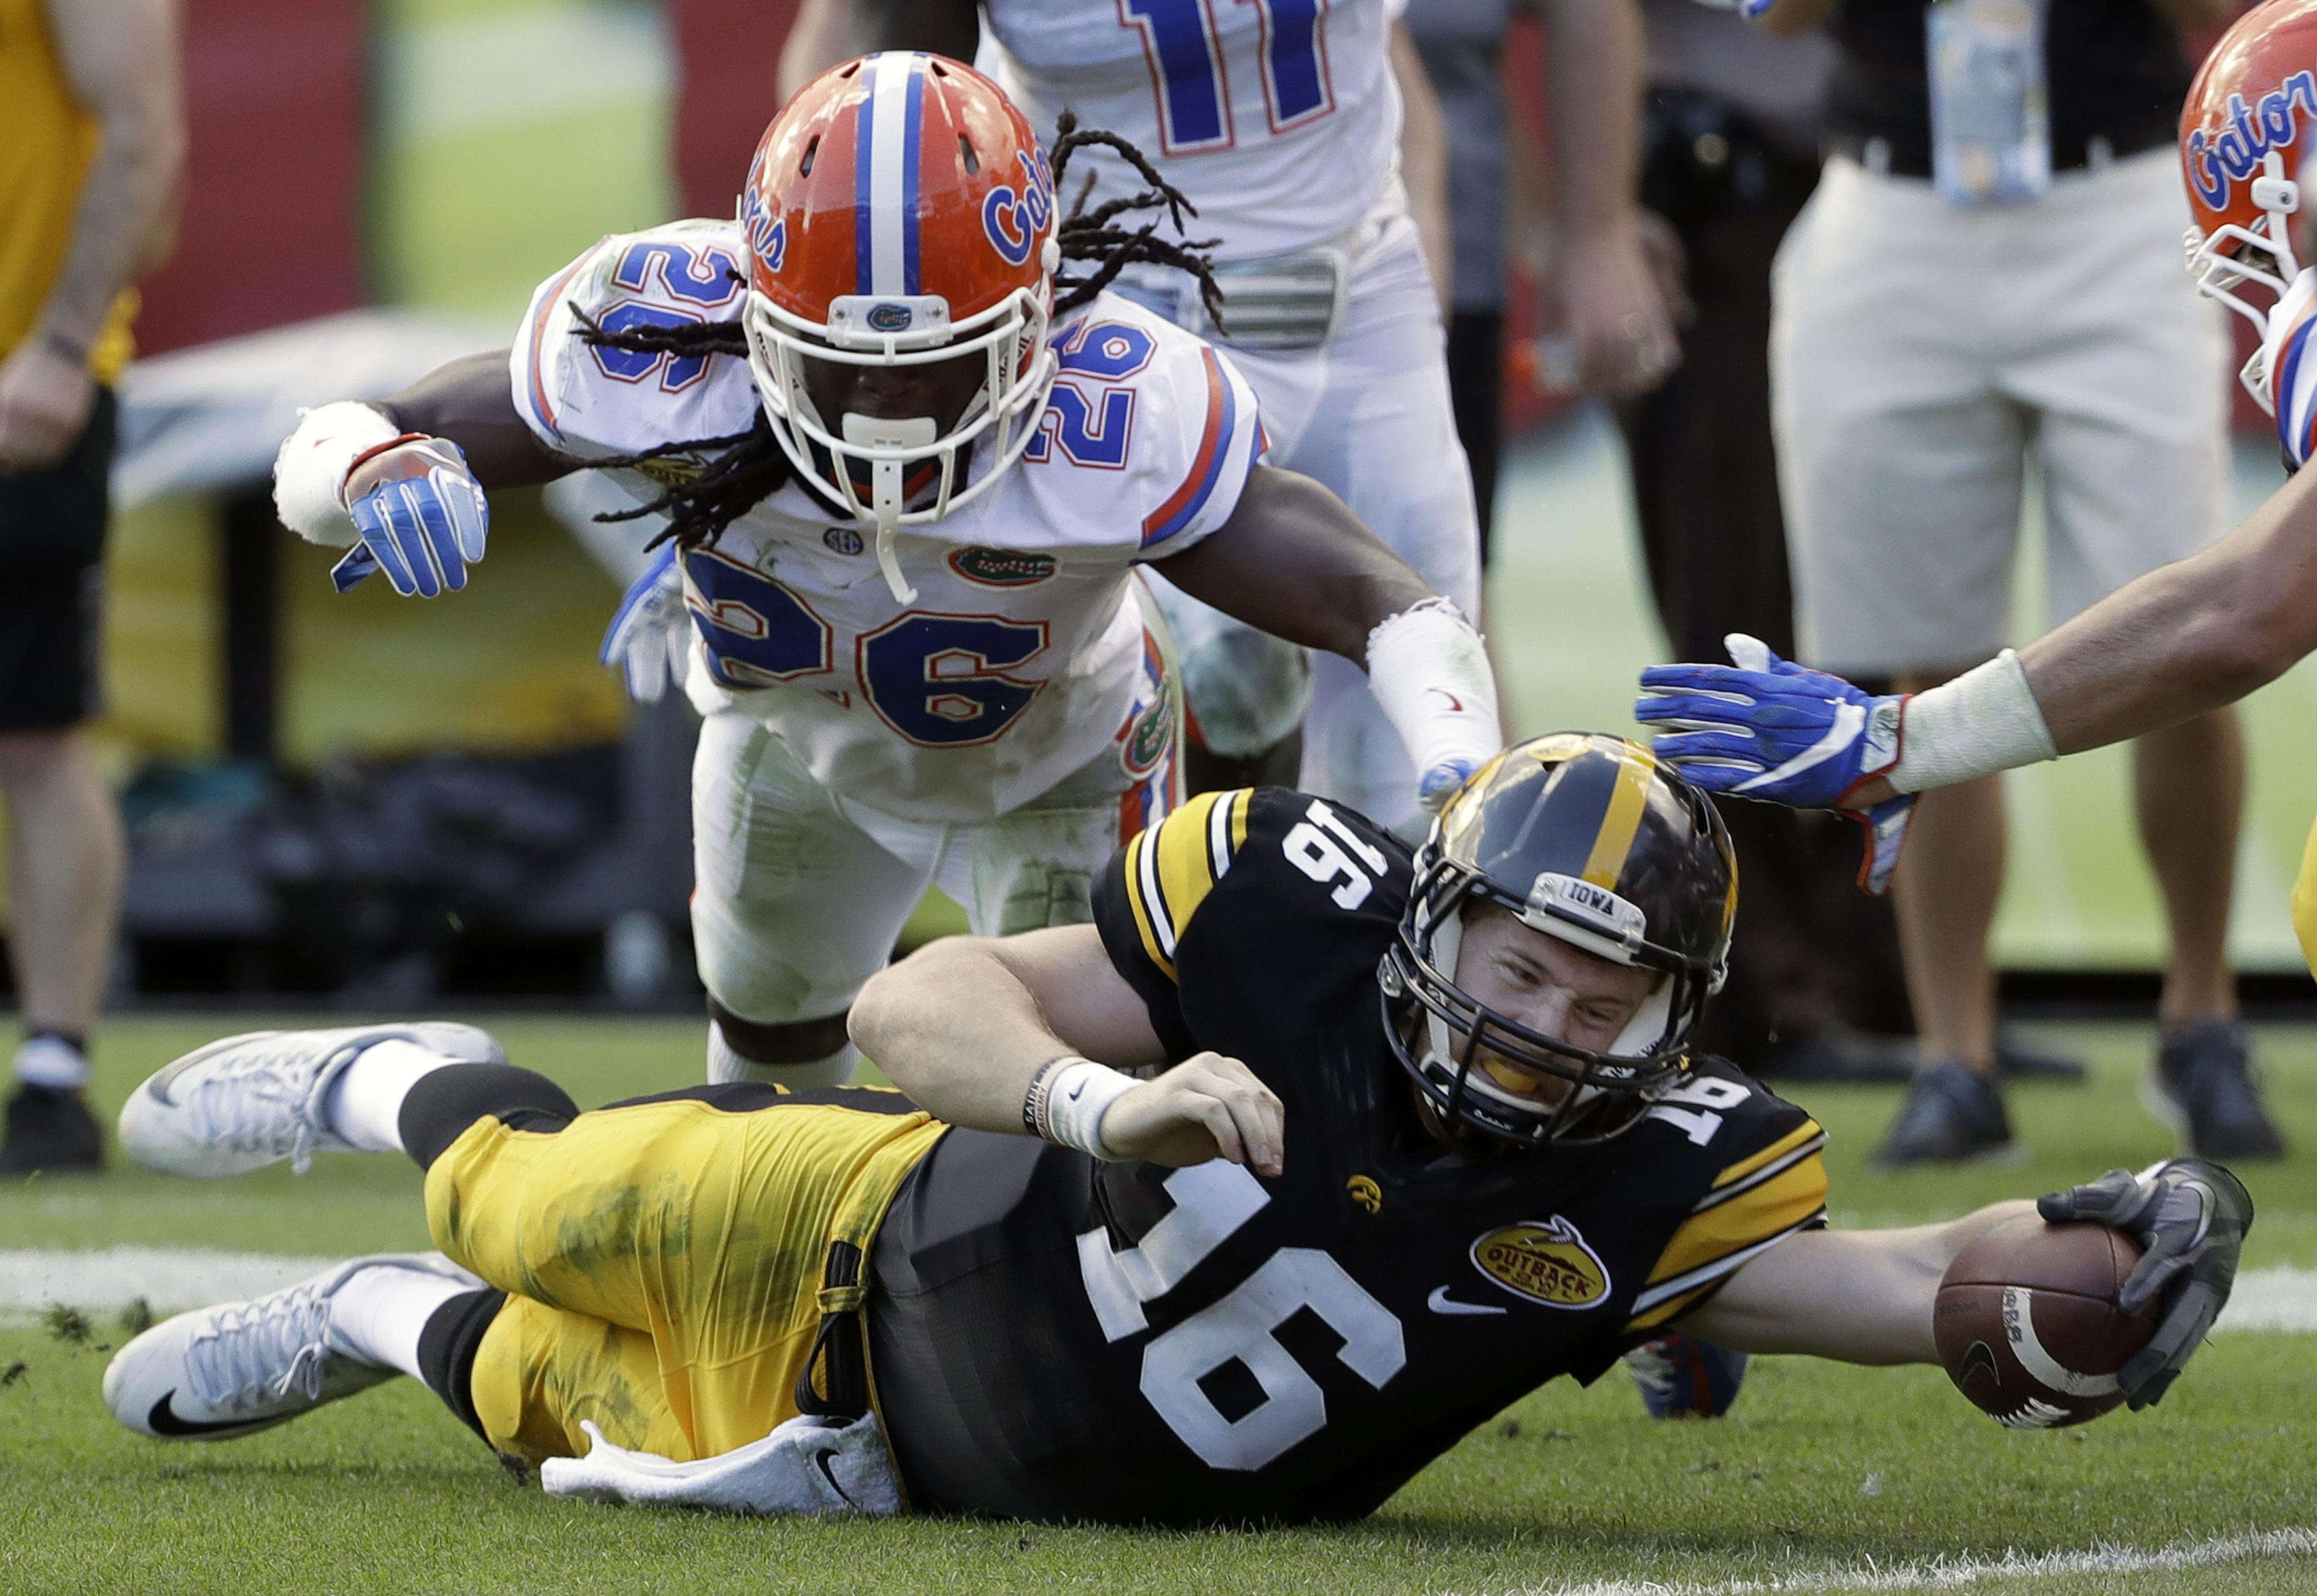 Outback_bowl_football_10202